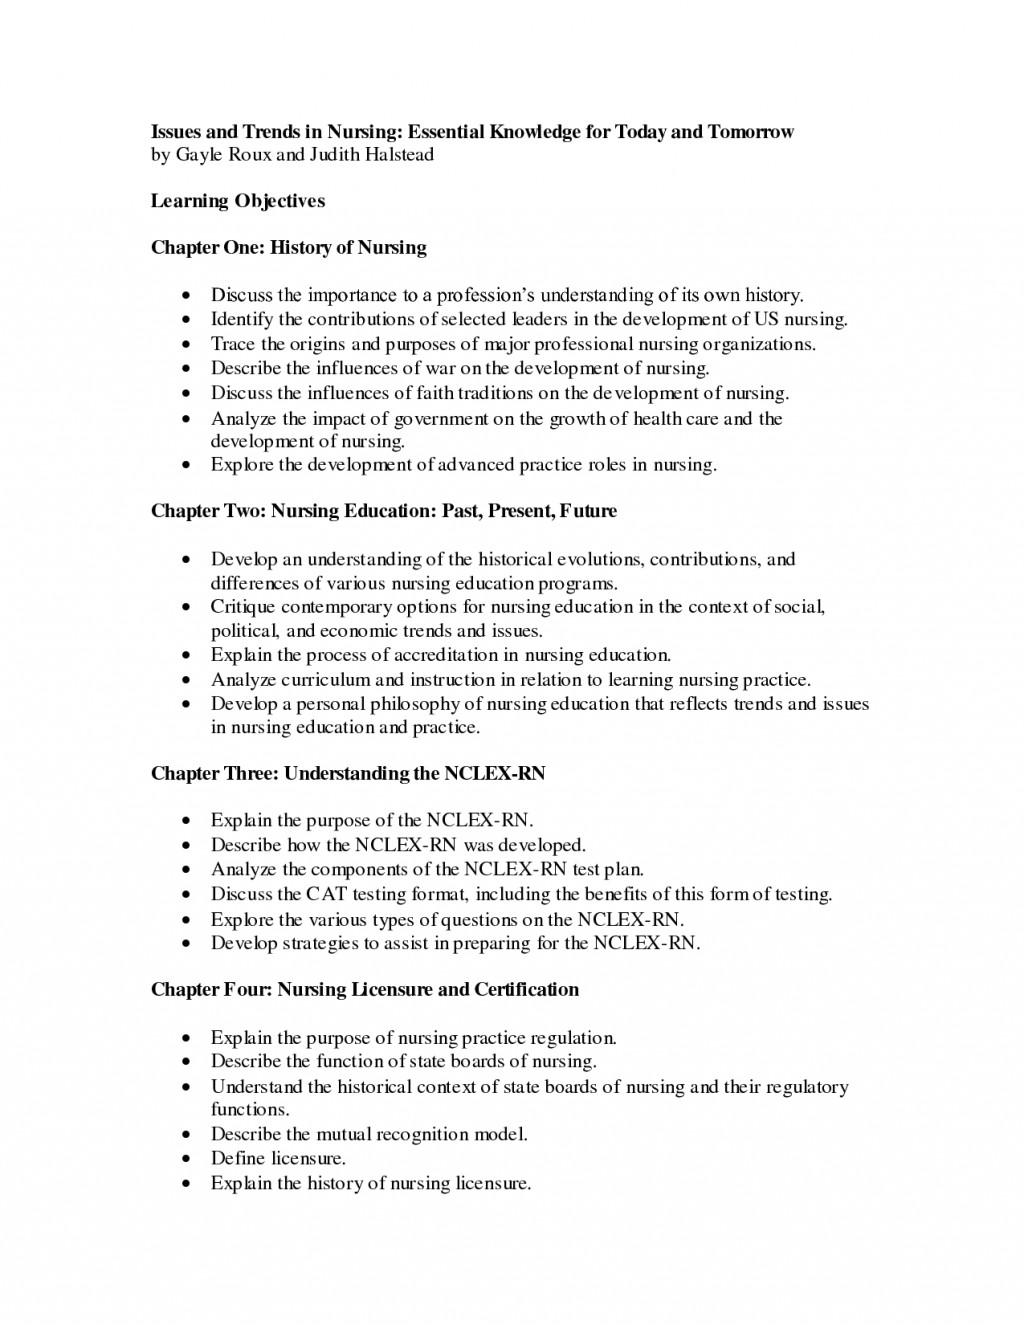 001 Research Paper On Nursing Wondrous Topics Peer Reviewed Articles Shortage For Large